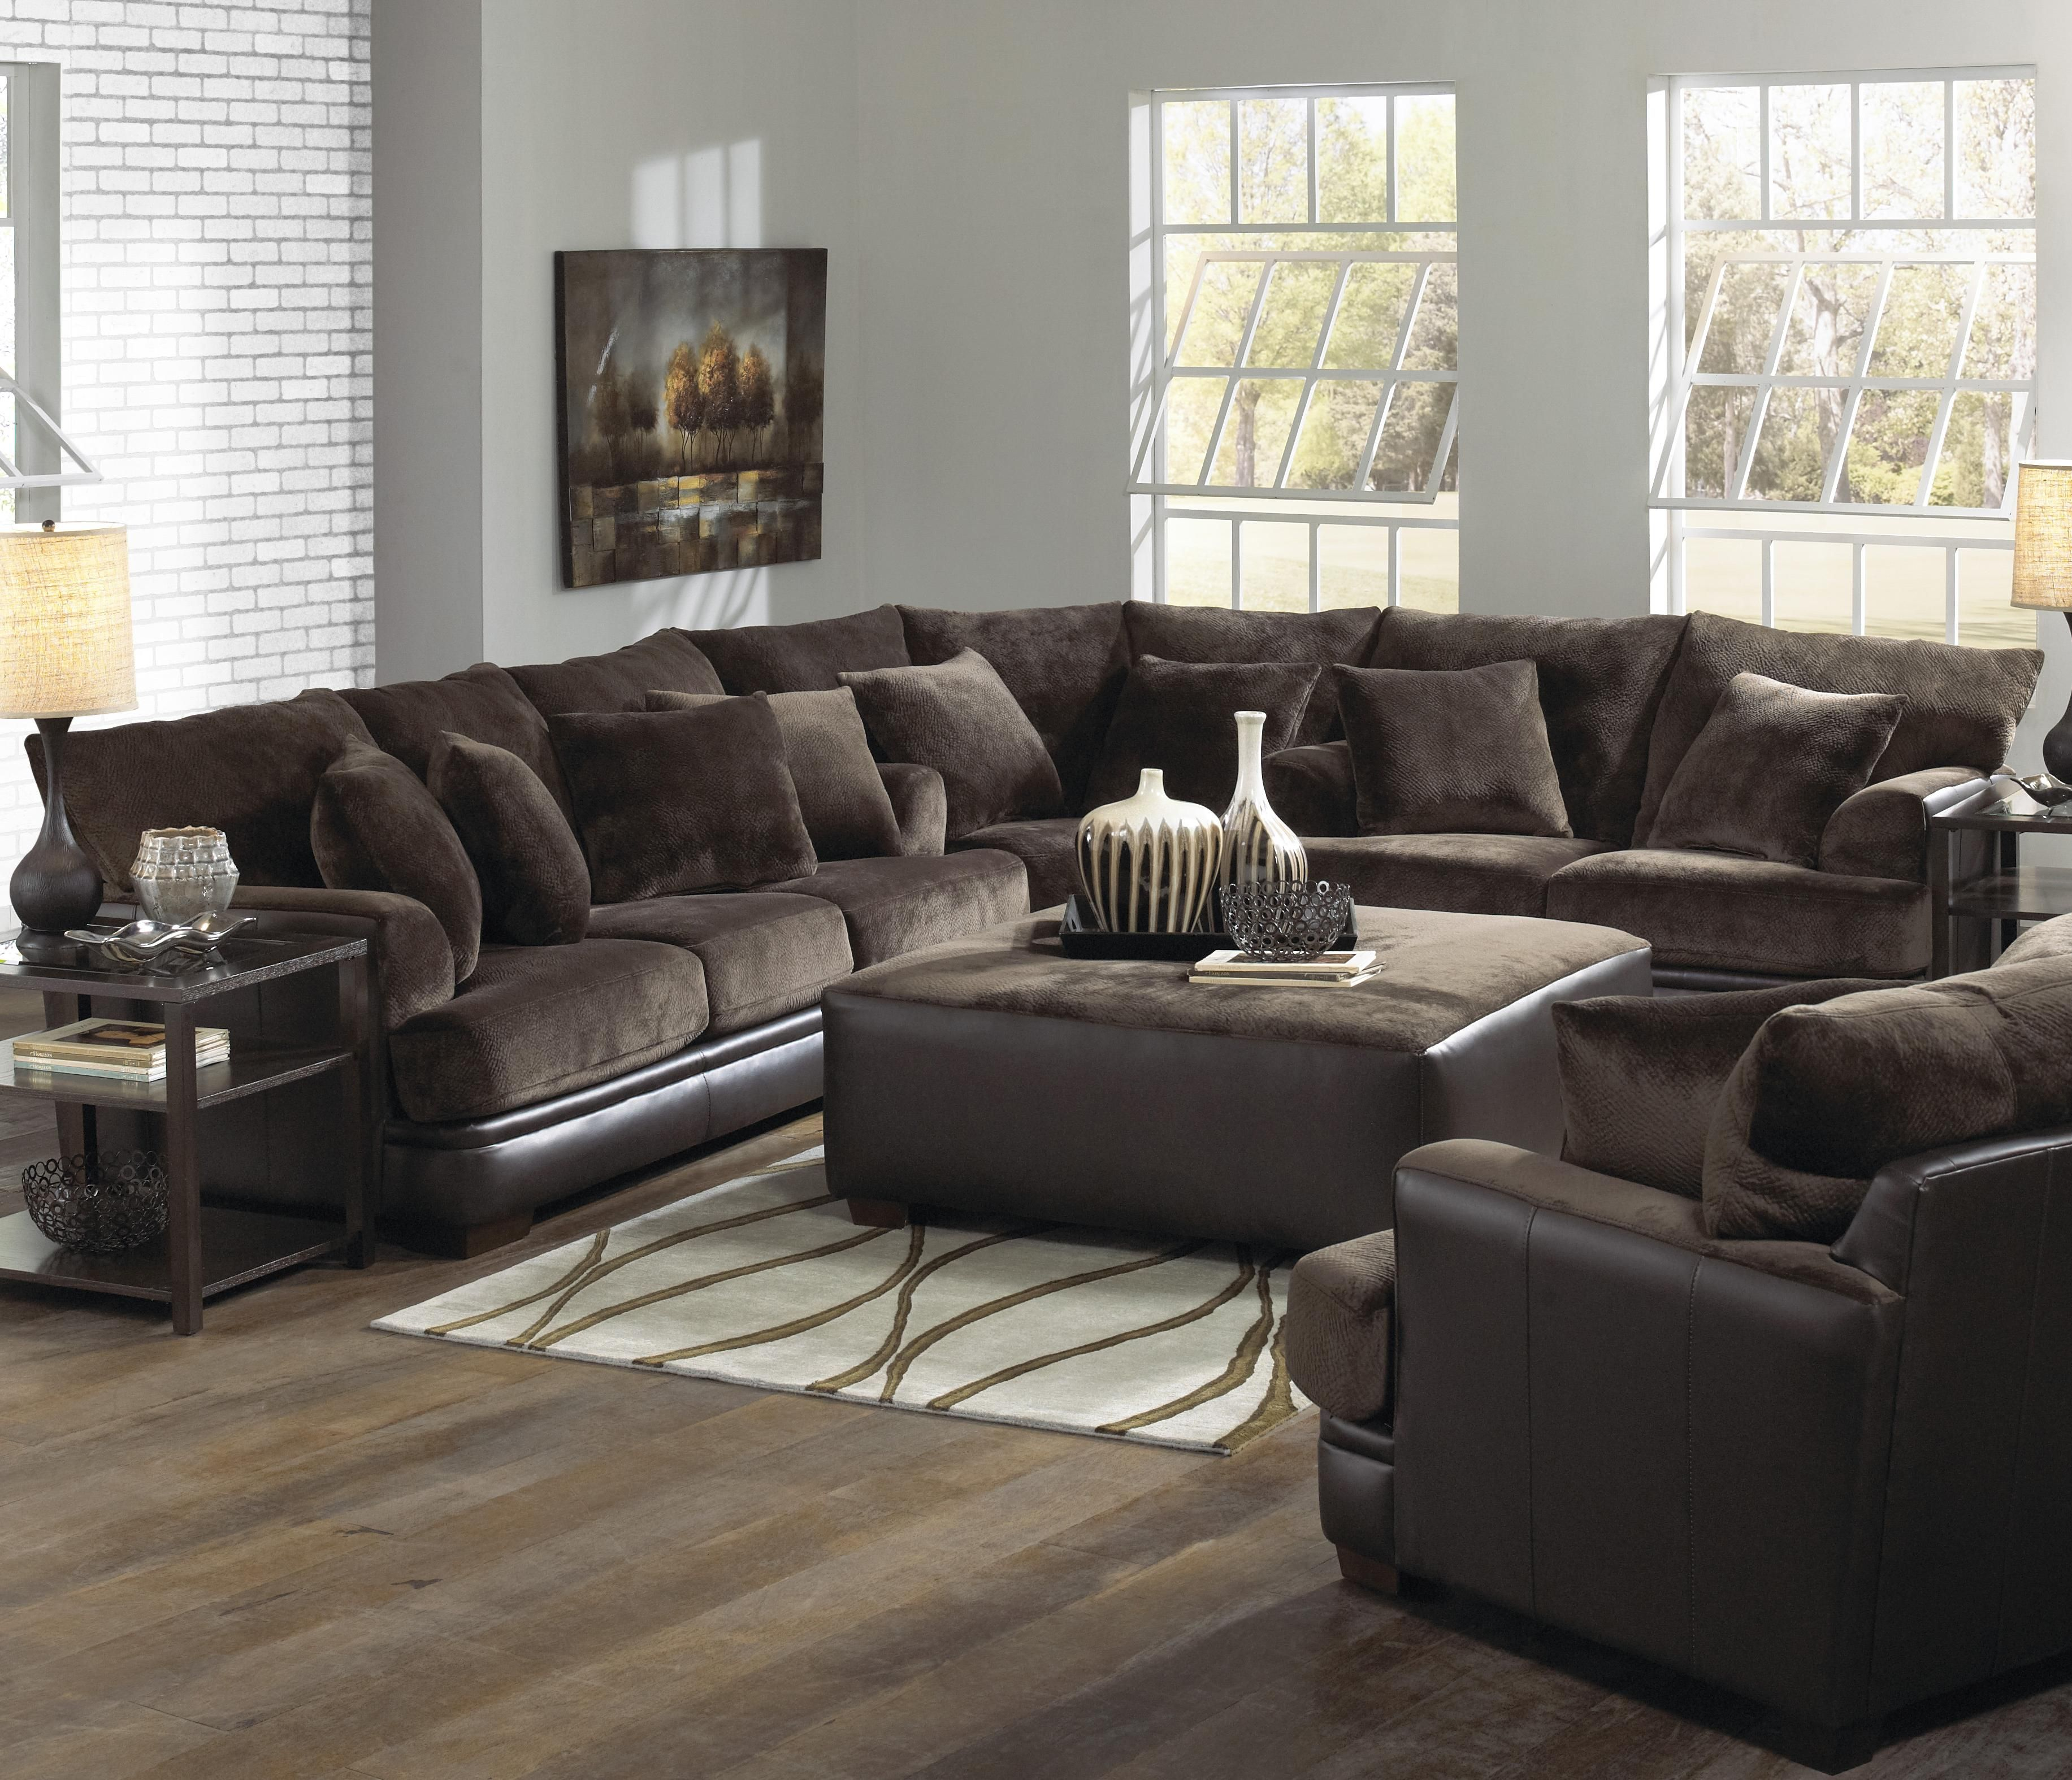 Barkley Large L Shaped Sectional Sofa With Right Side Loveseat By Jackson  Furniture | Wolf. Ikea Living Room ... Part 29